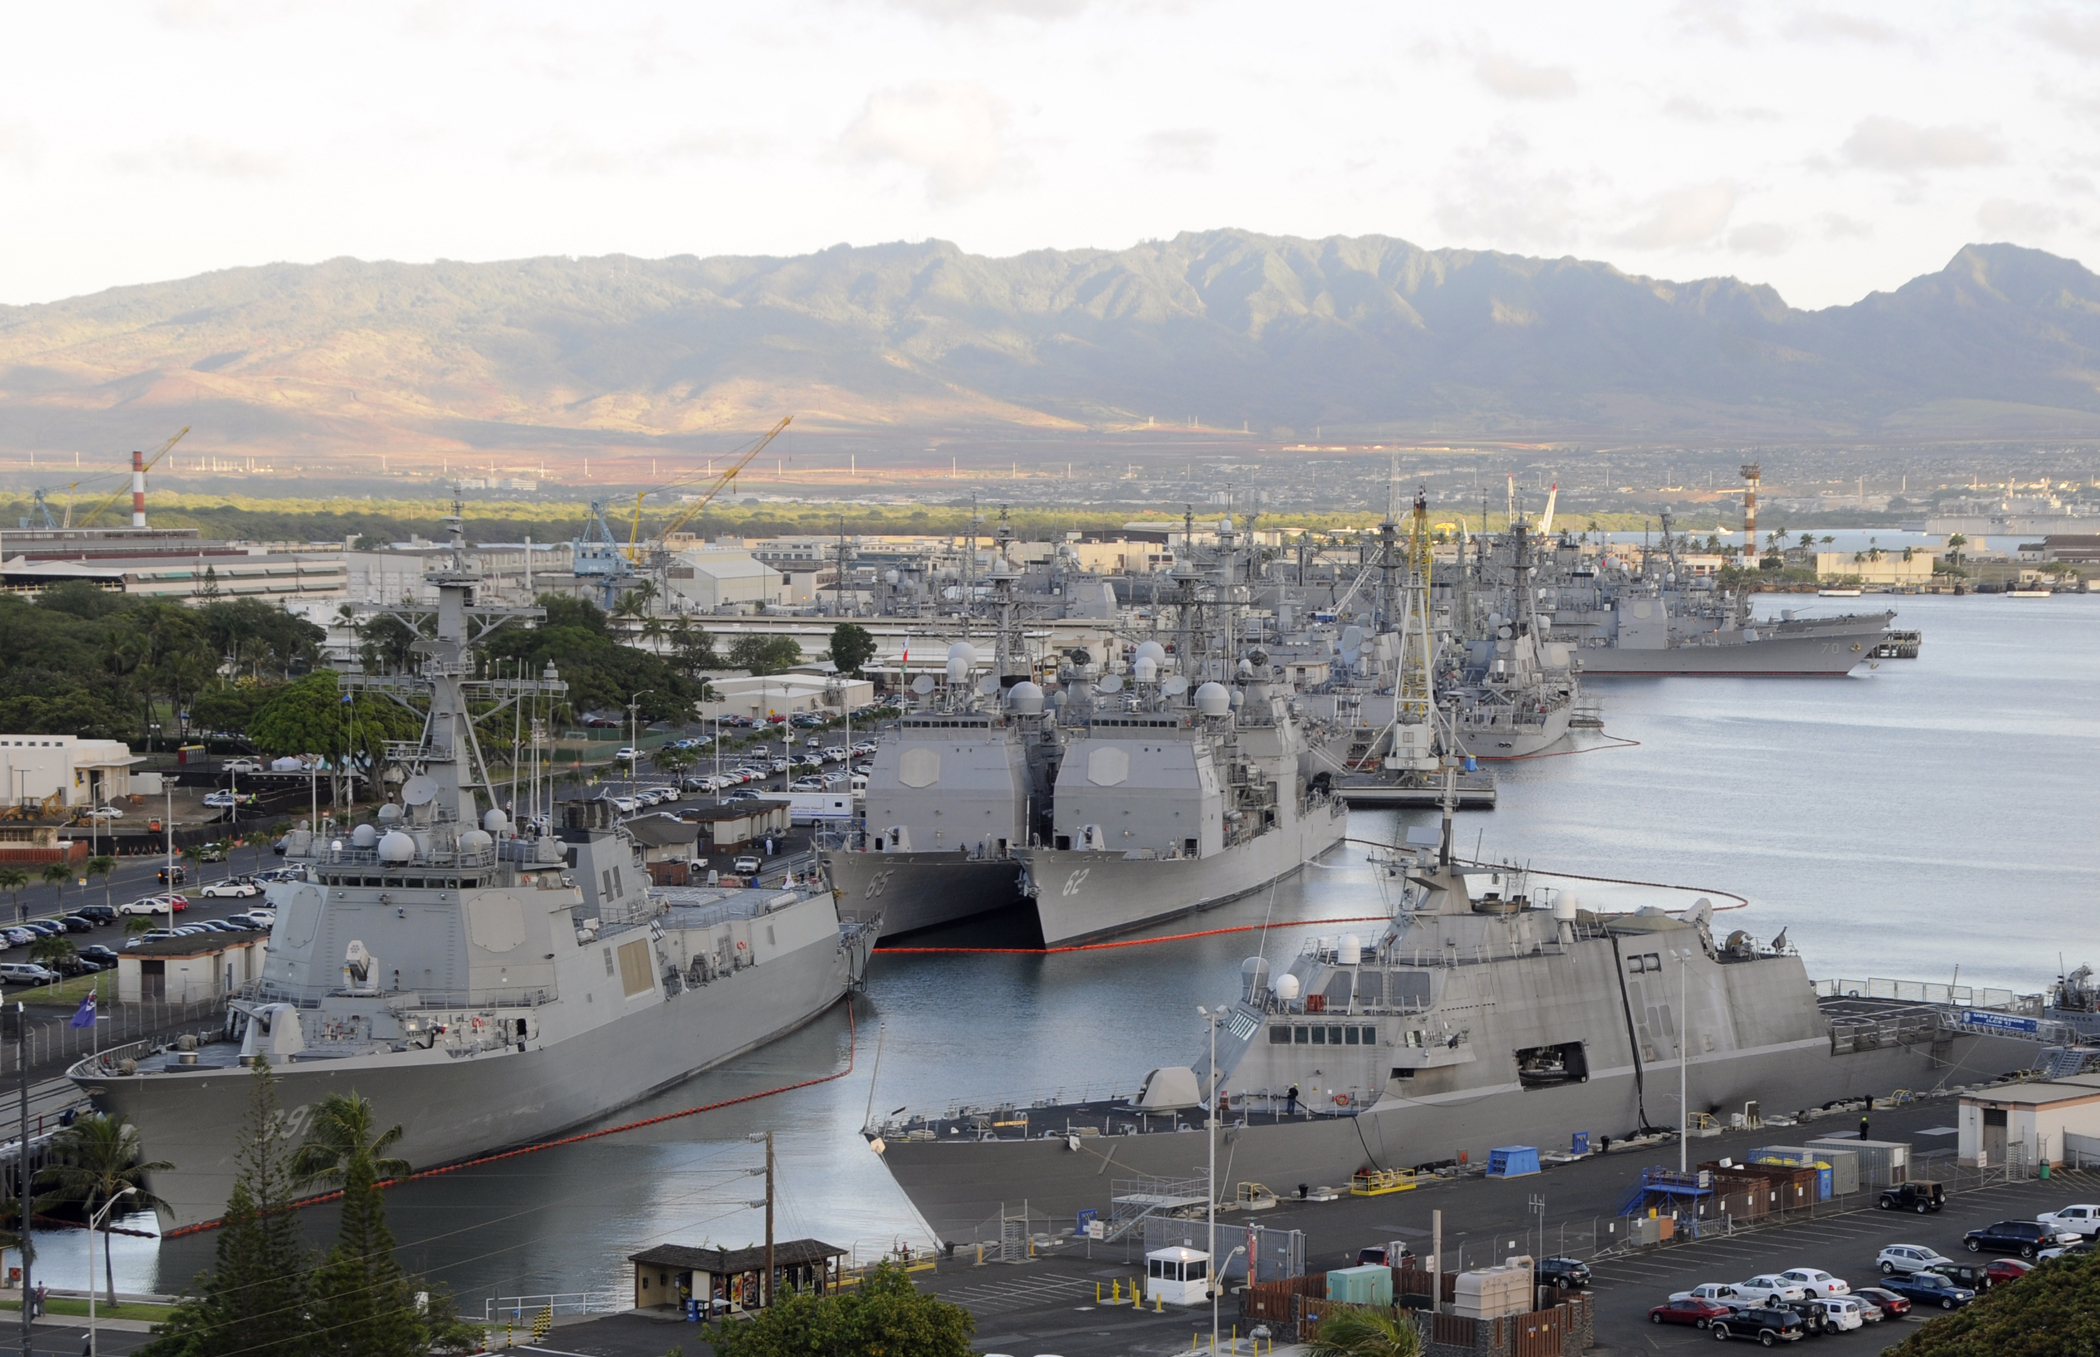 Naval Base Pearl Harbor Today